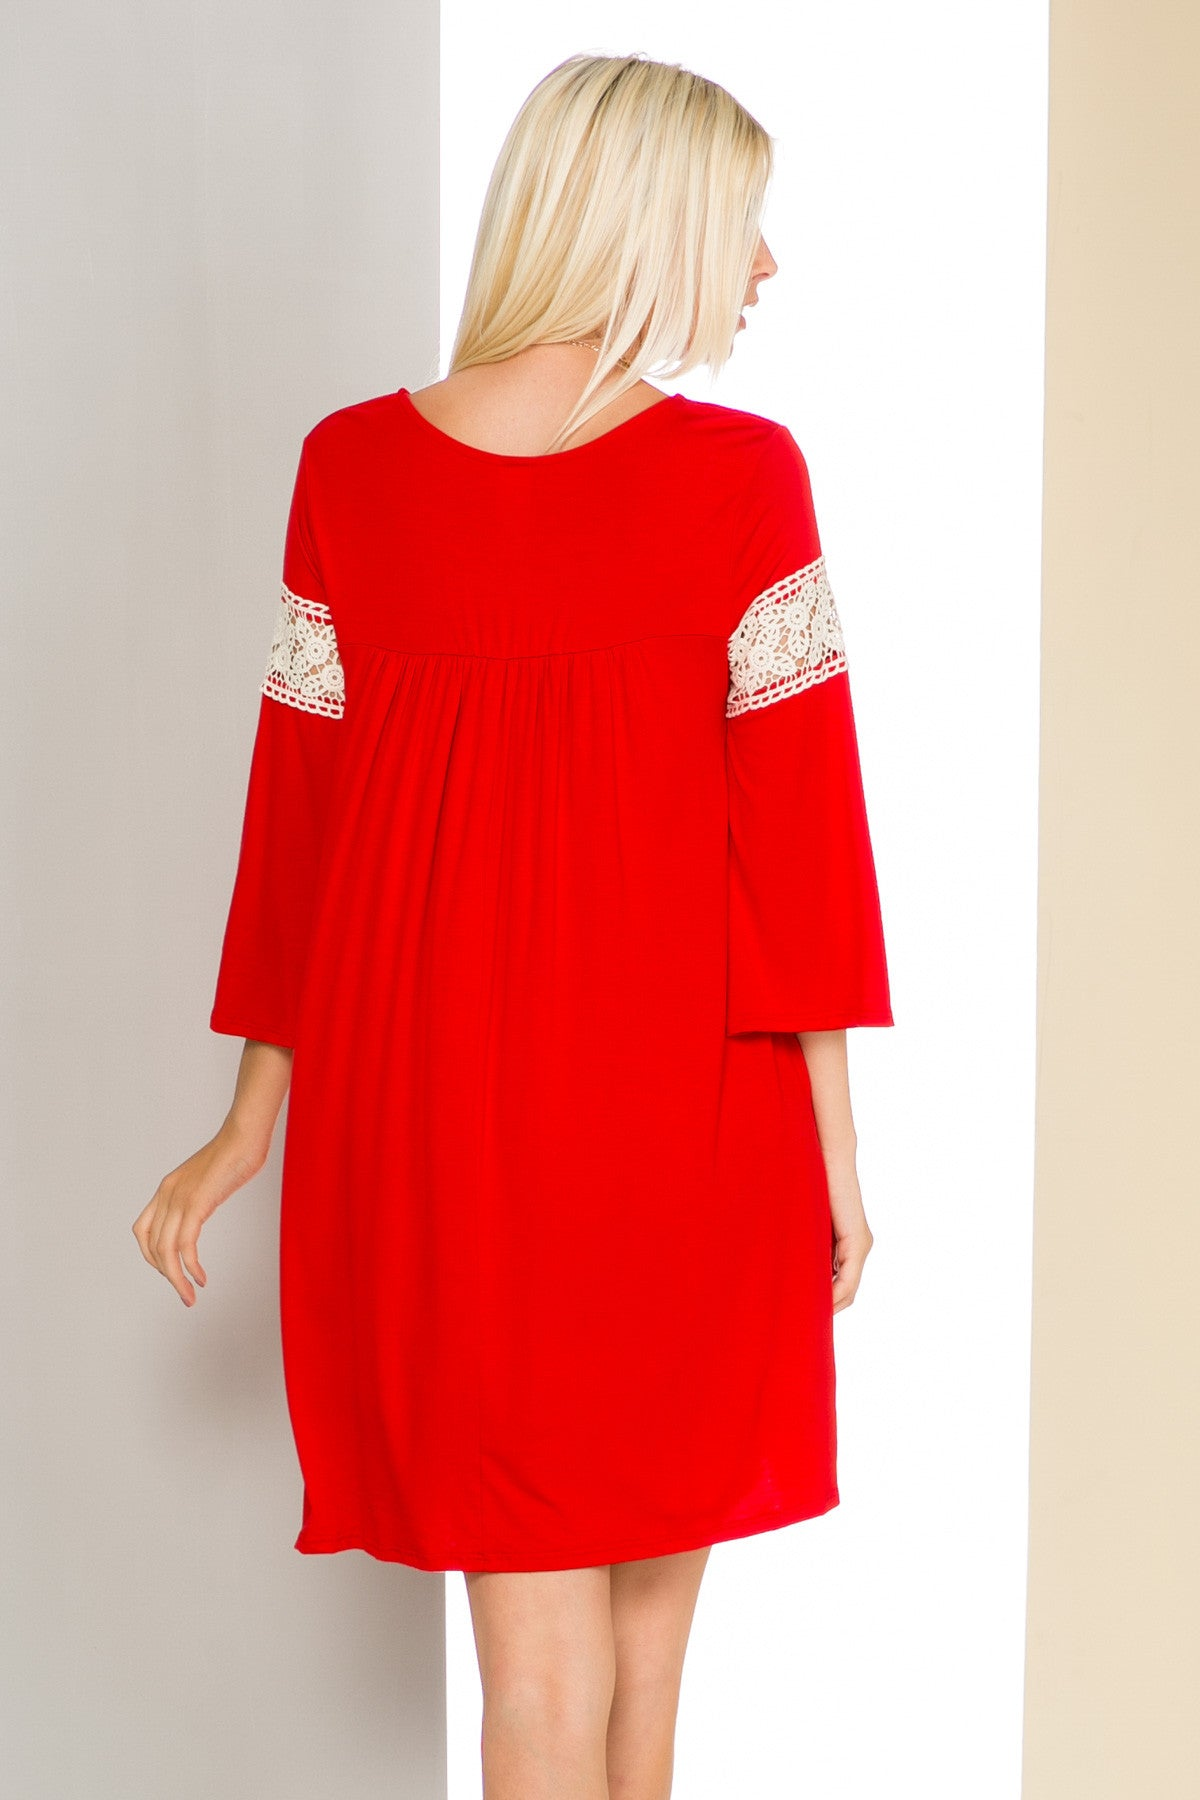 Red Bell Sleeve Crochet Trim Swing Dress - Dresses - My Yuccie - 4